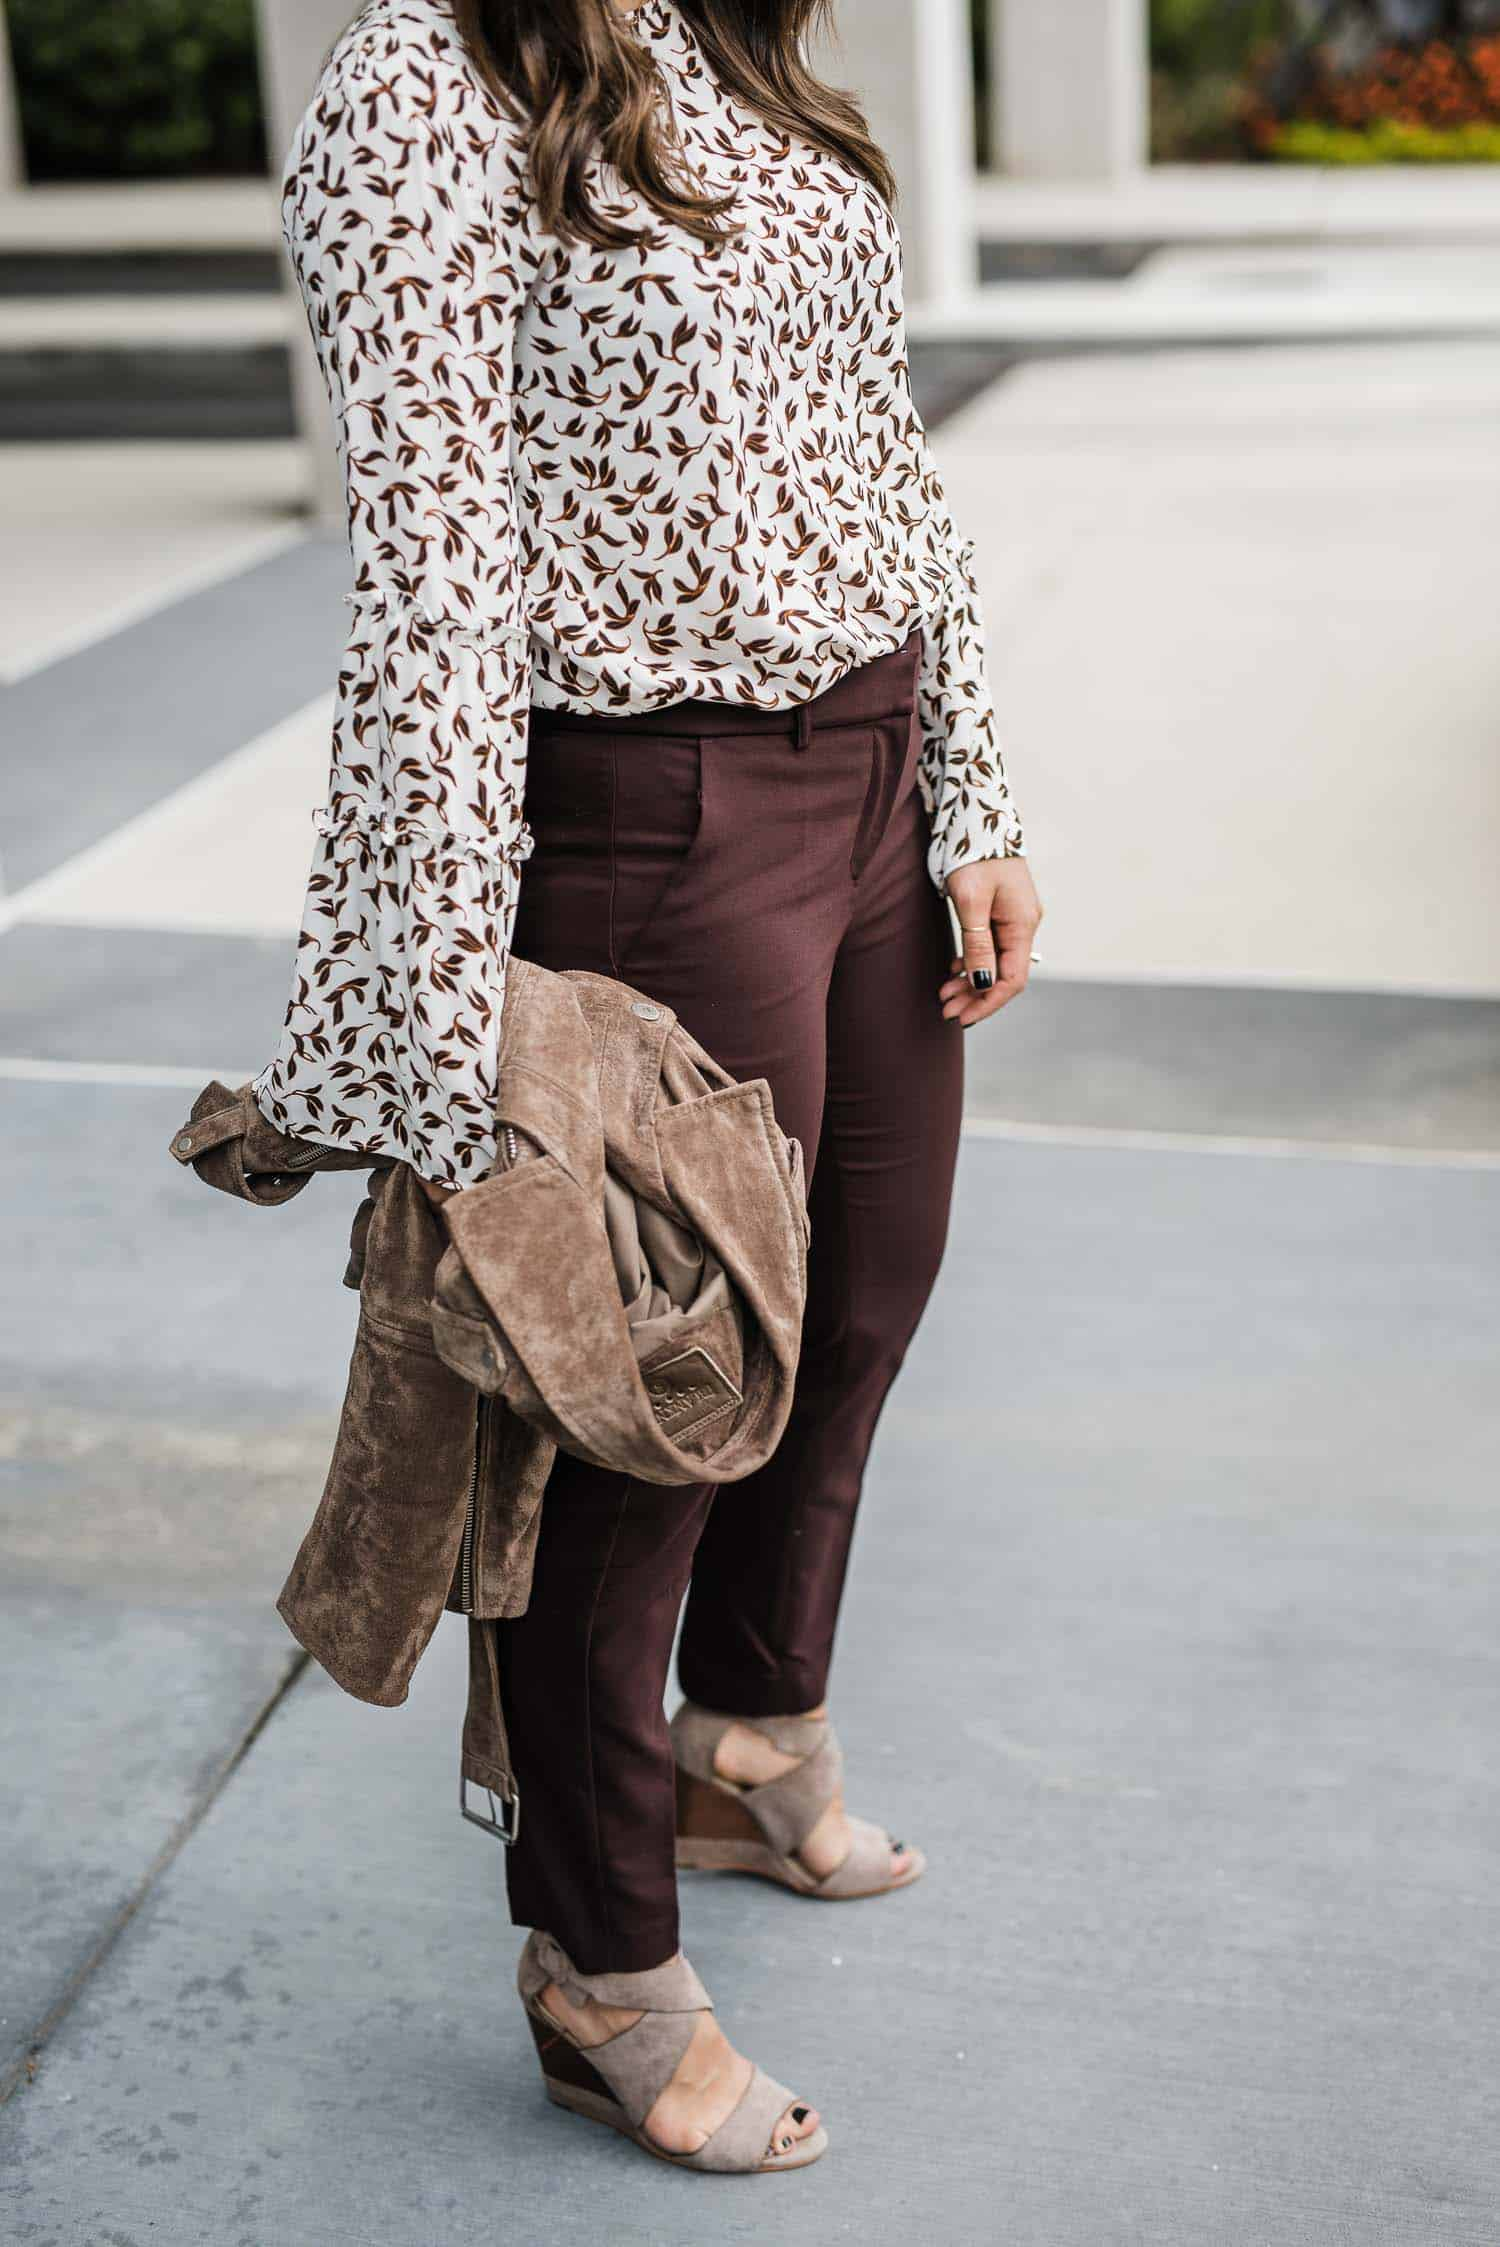 how to style work pants for fall, burgundy work pants, casual office outfit. Casual Work Outfit Ideas